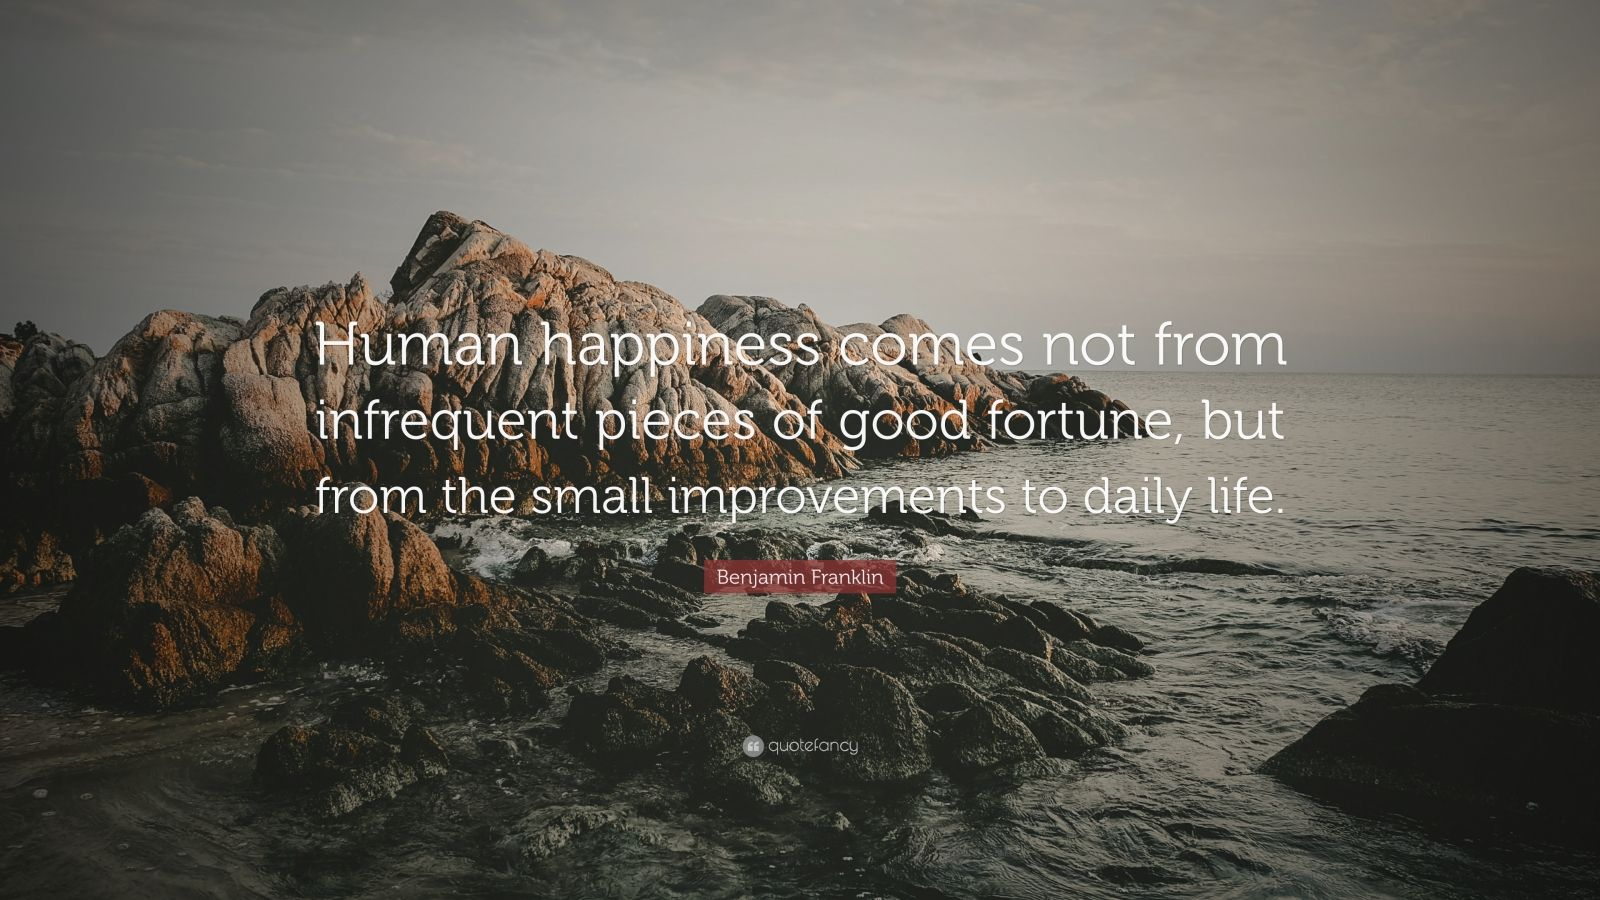 """Benjamin Franklin Quote: """"Human happiness comes not from infrequent pieces of good fortune, but from the small improvements to daily life."""""""